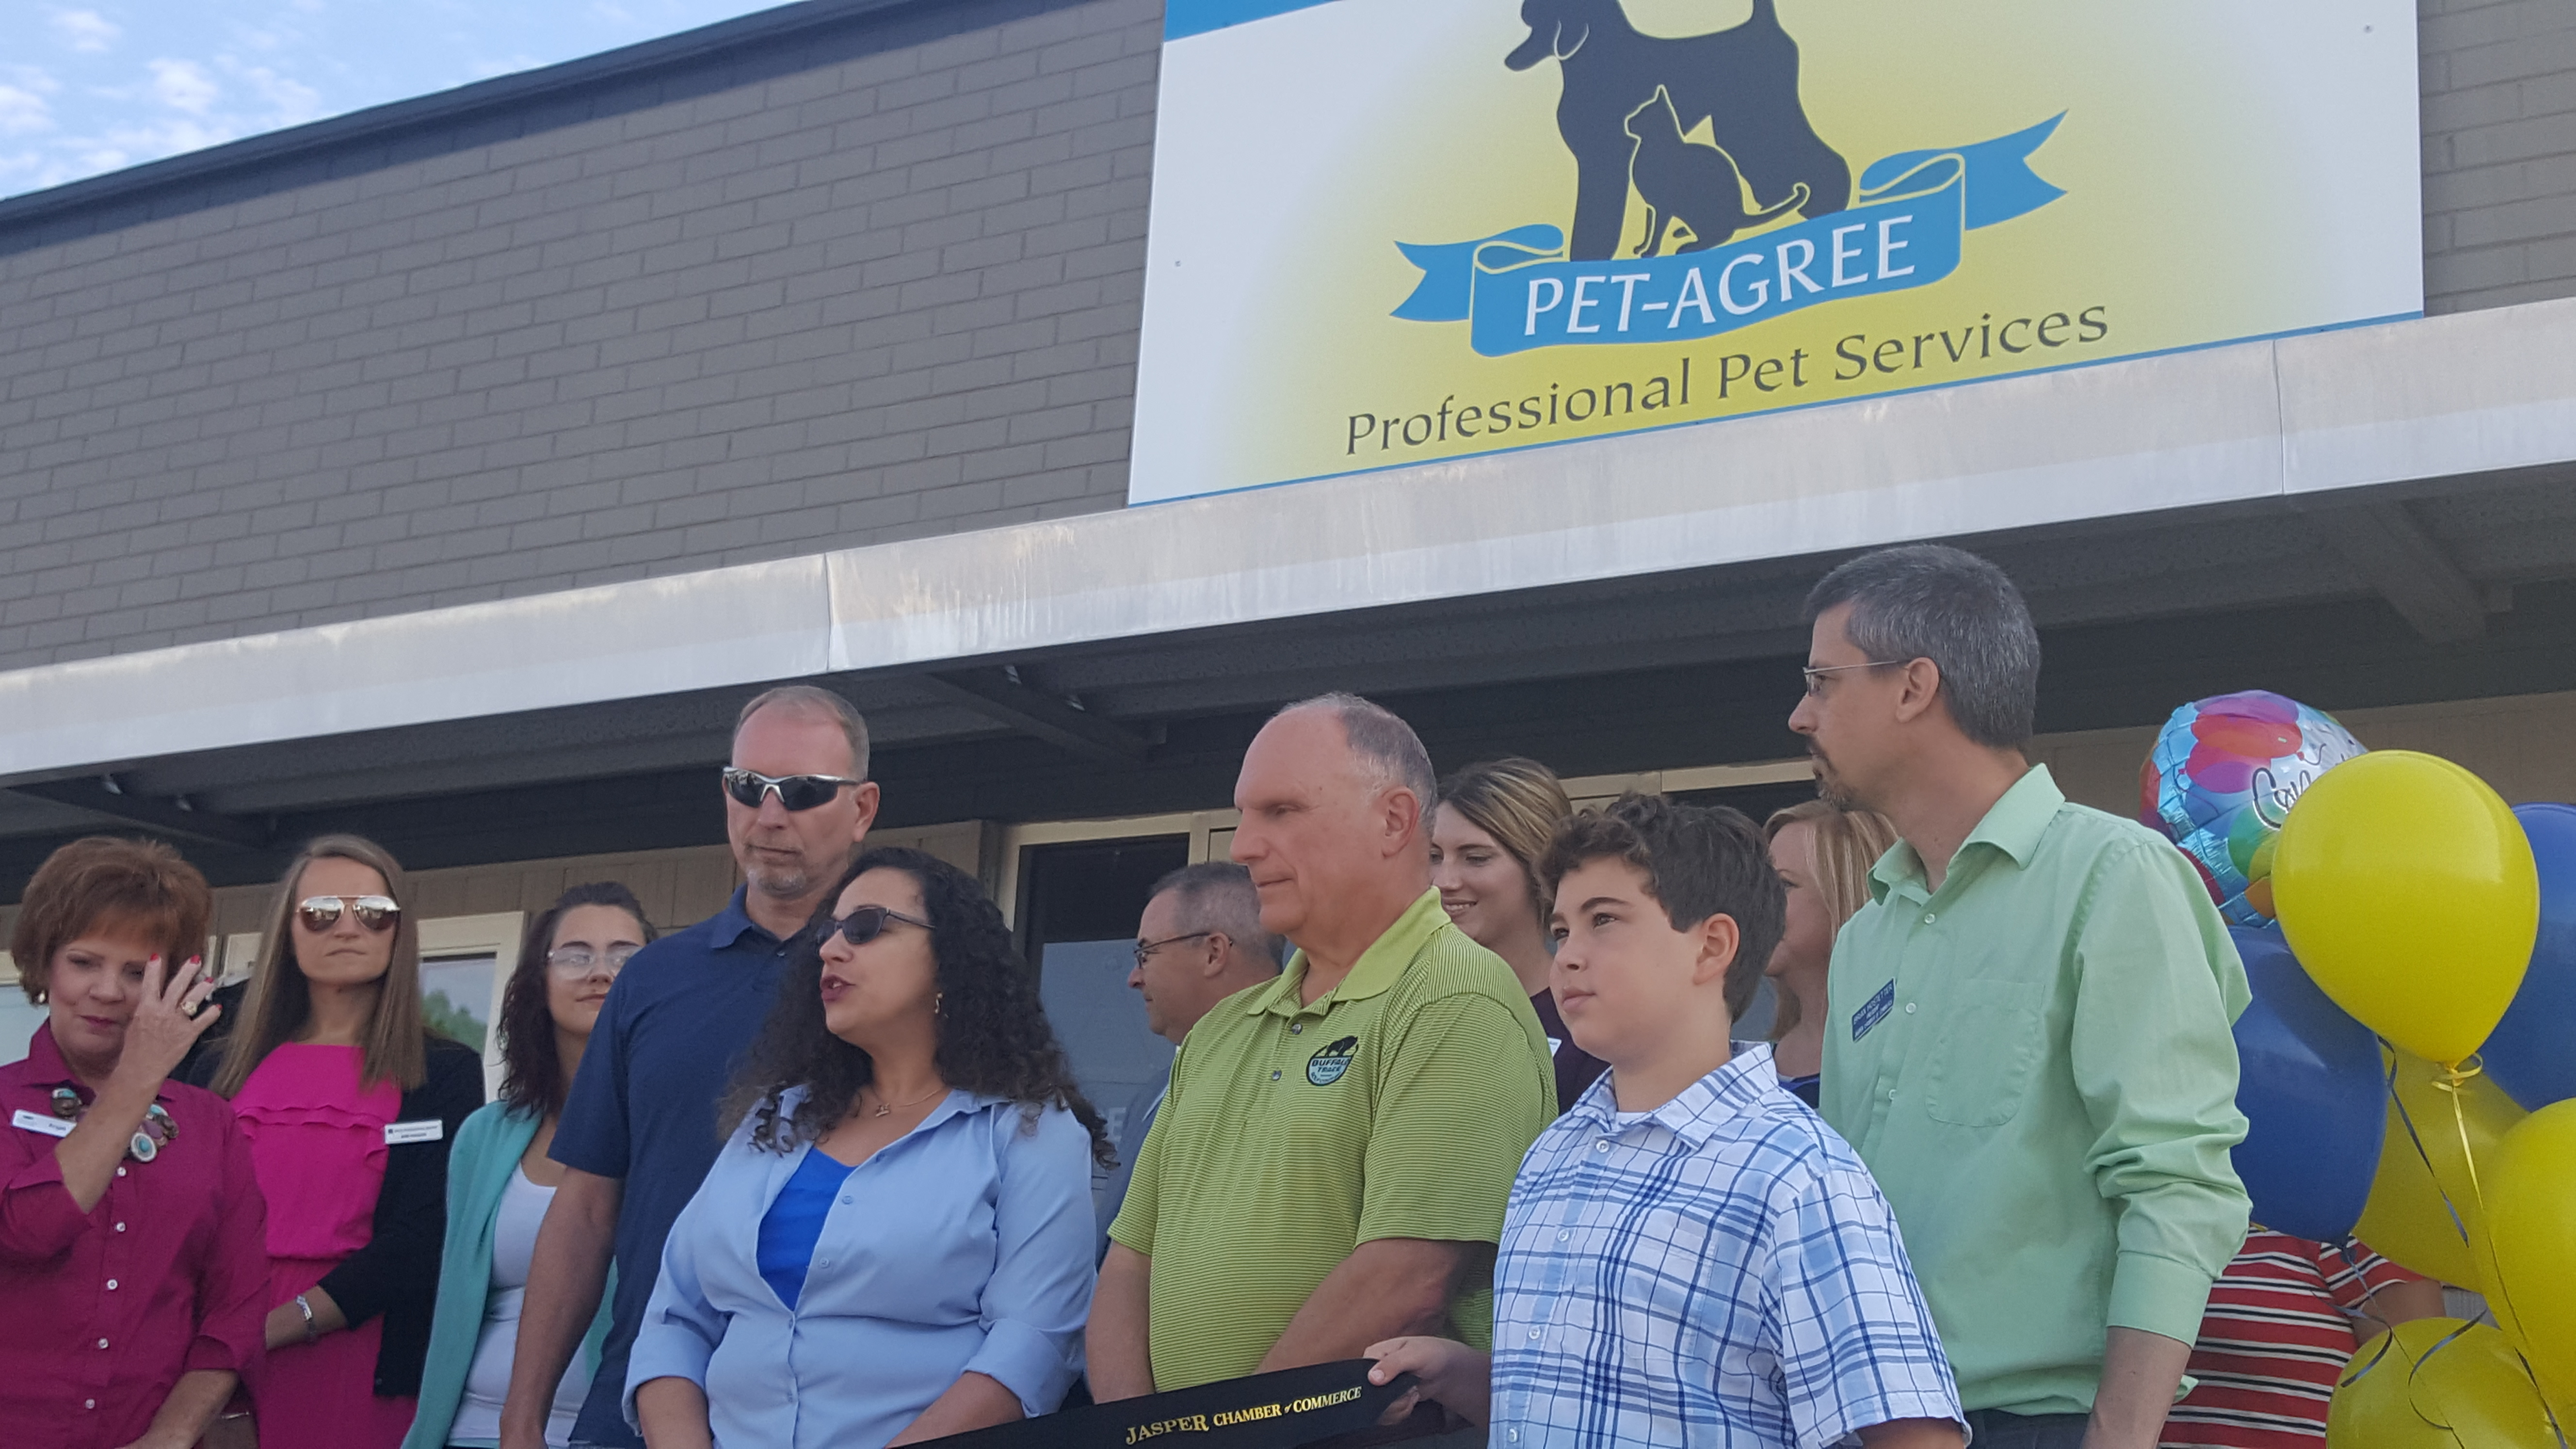 BIG PLANS:  Pet-Agree Opens New Location in Jasper